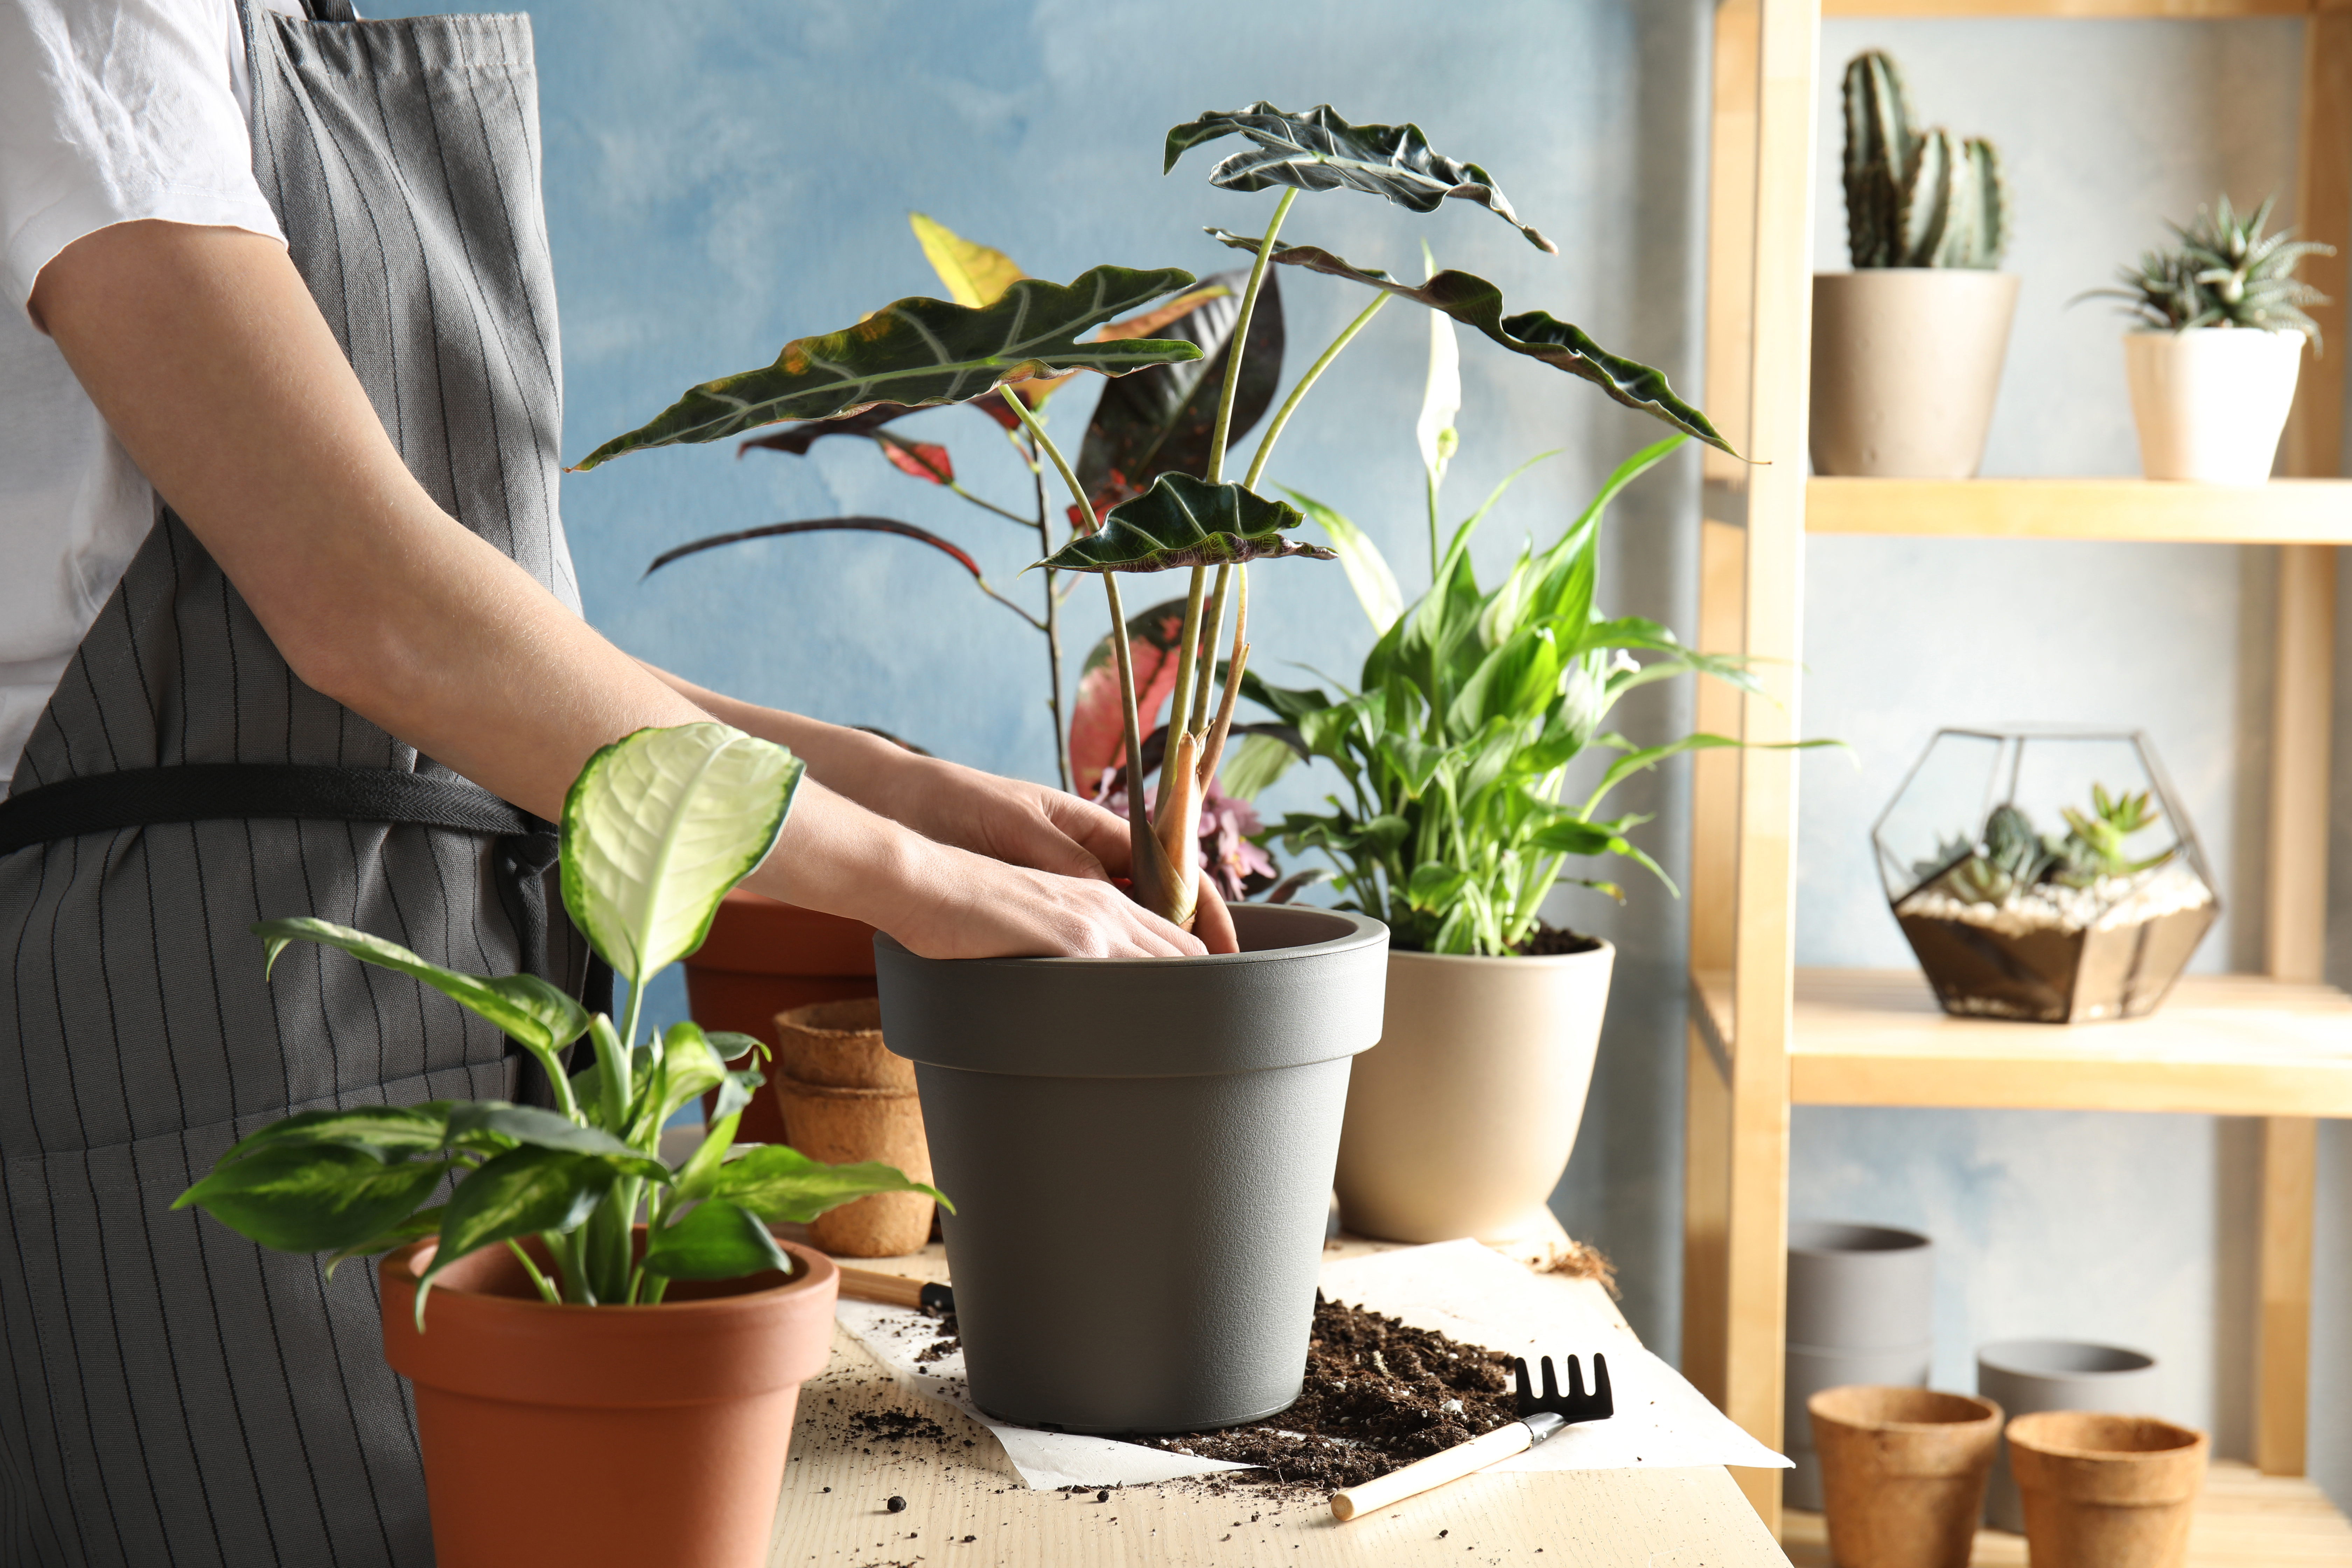 person potting plants indoors, potting benches